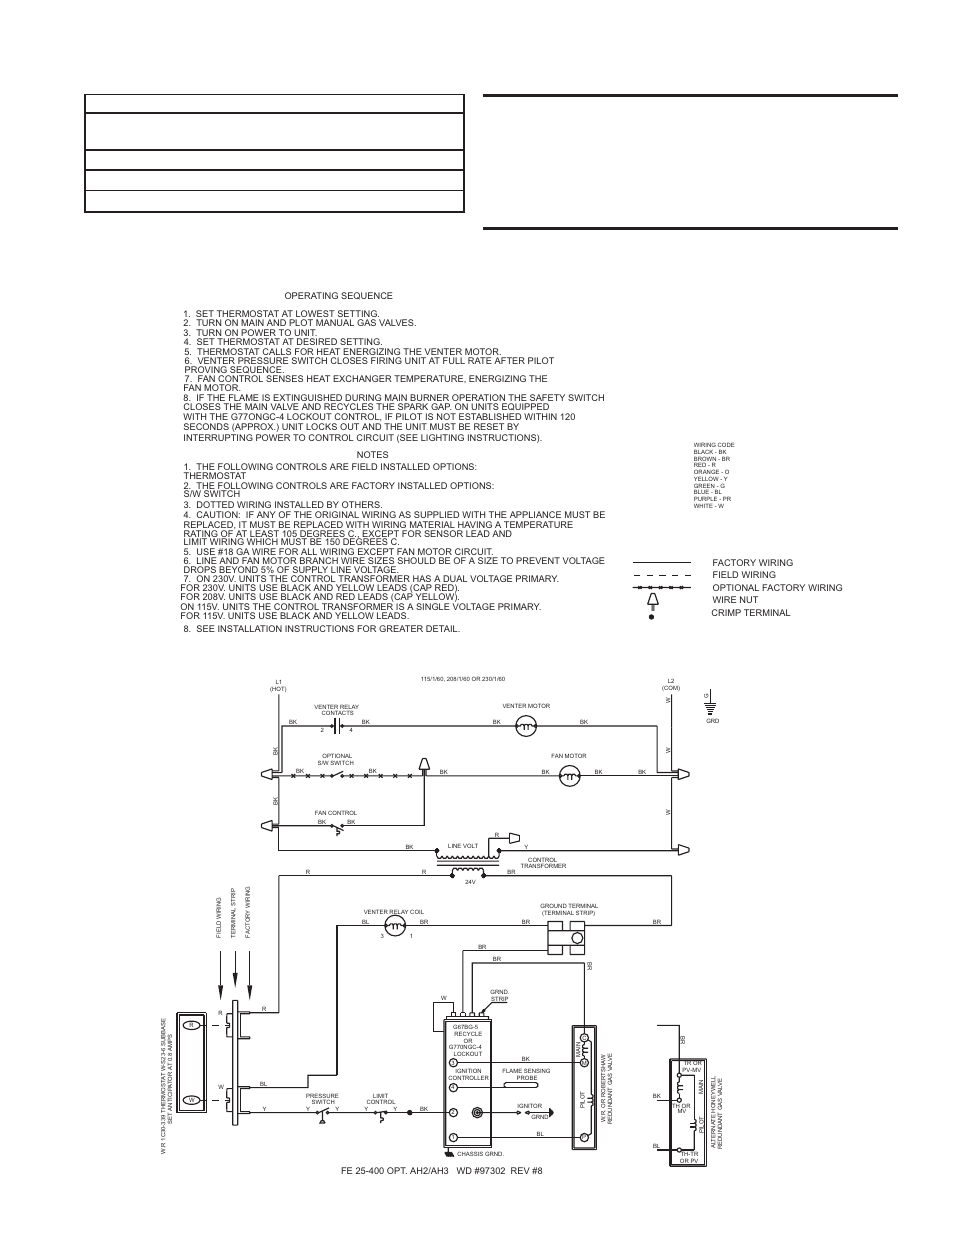 Typical Control Wiring On Furnace Reznor Diagrams How Should I Wire This Whiterodgers Fan And Limit What About Field Controls Power Venter Diagram 42 White Rodgers Schematic Basic